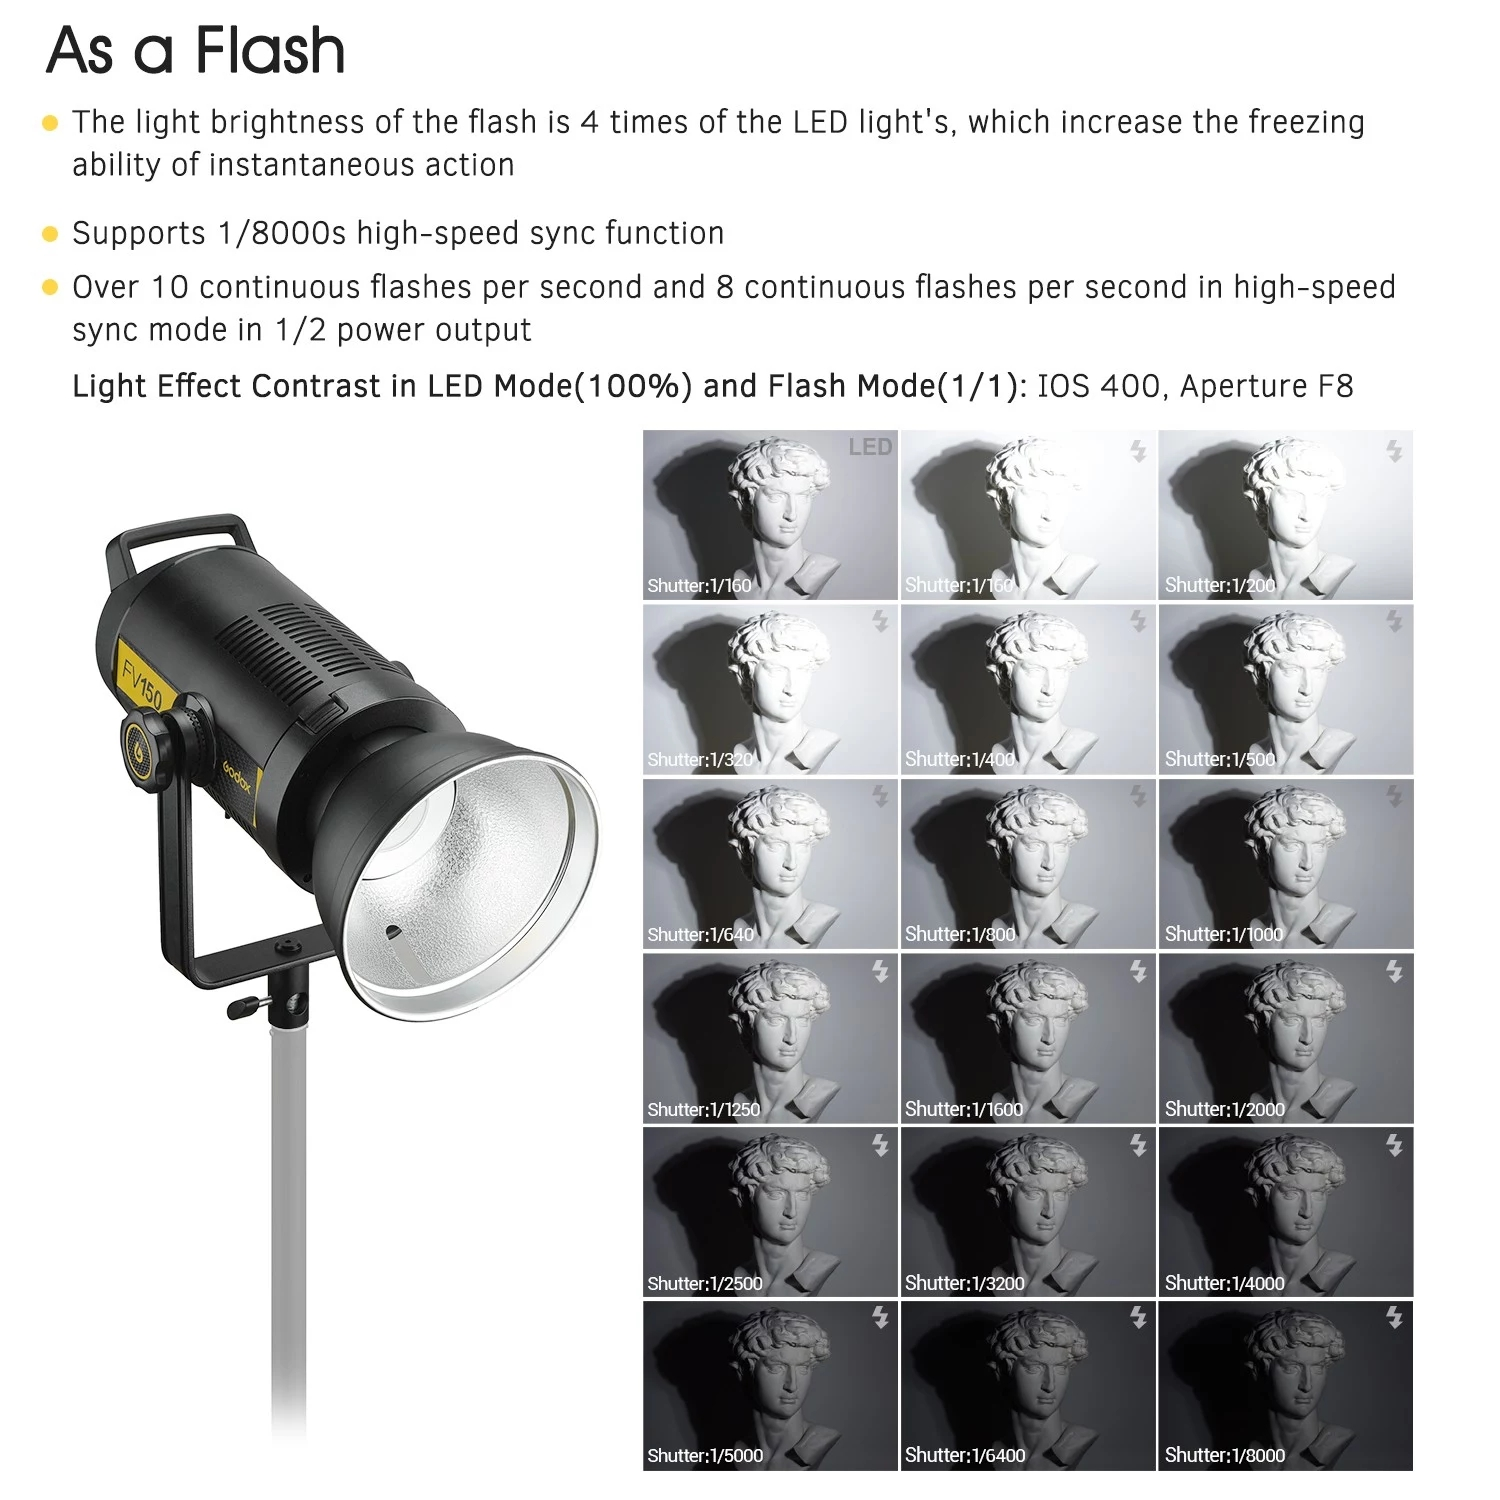 Godox FV200 1/8000s HSS Flash LED Light 200Ws Dimmable 5600K CRI 96+ 2.4G Wireless 8 FX Modes Remote Control for Photography